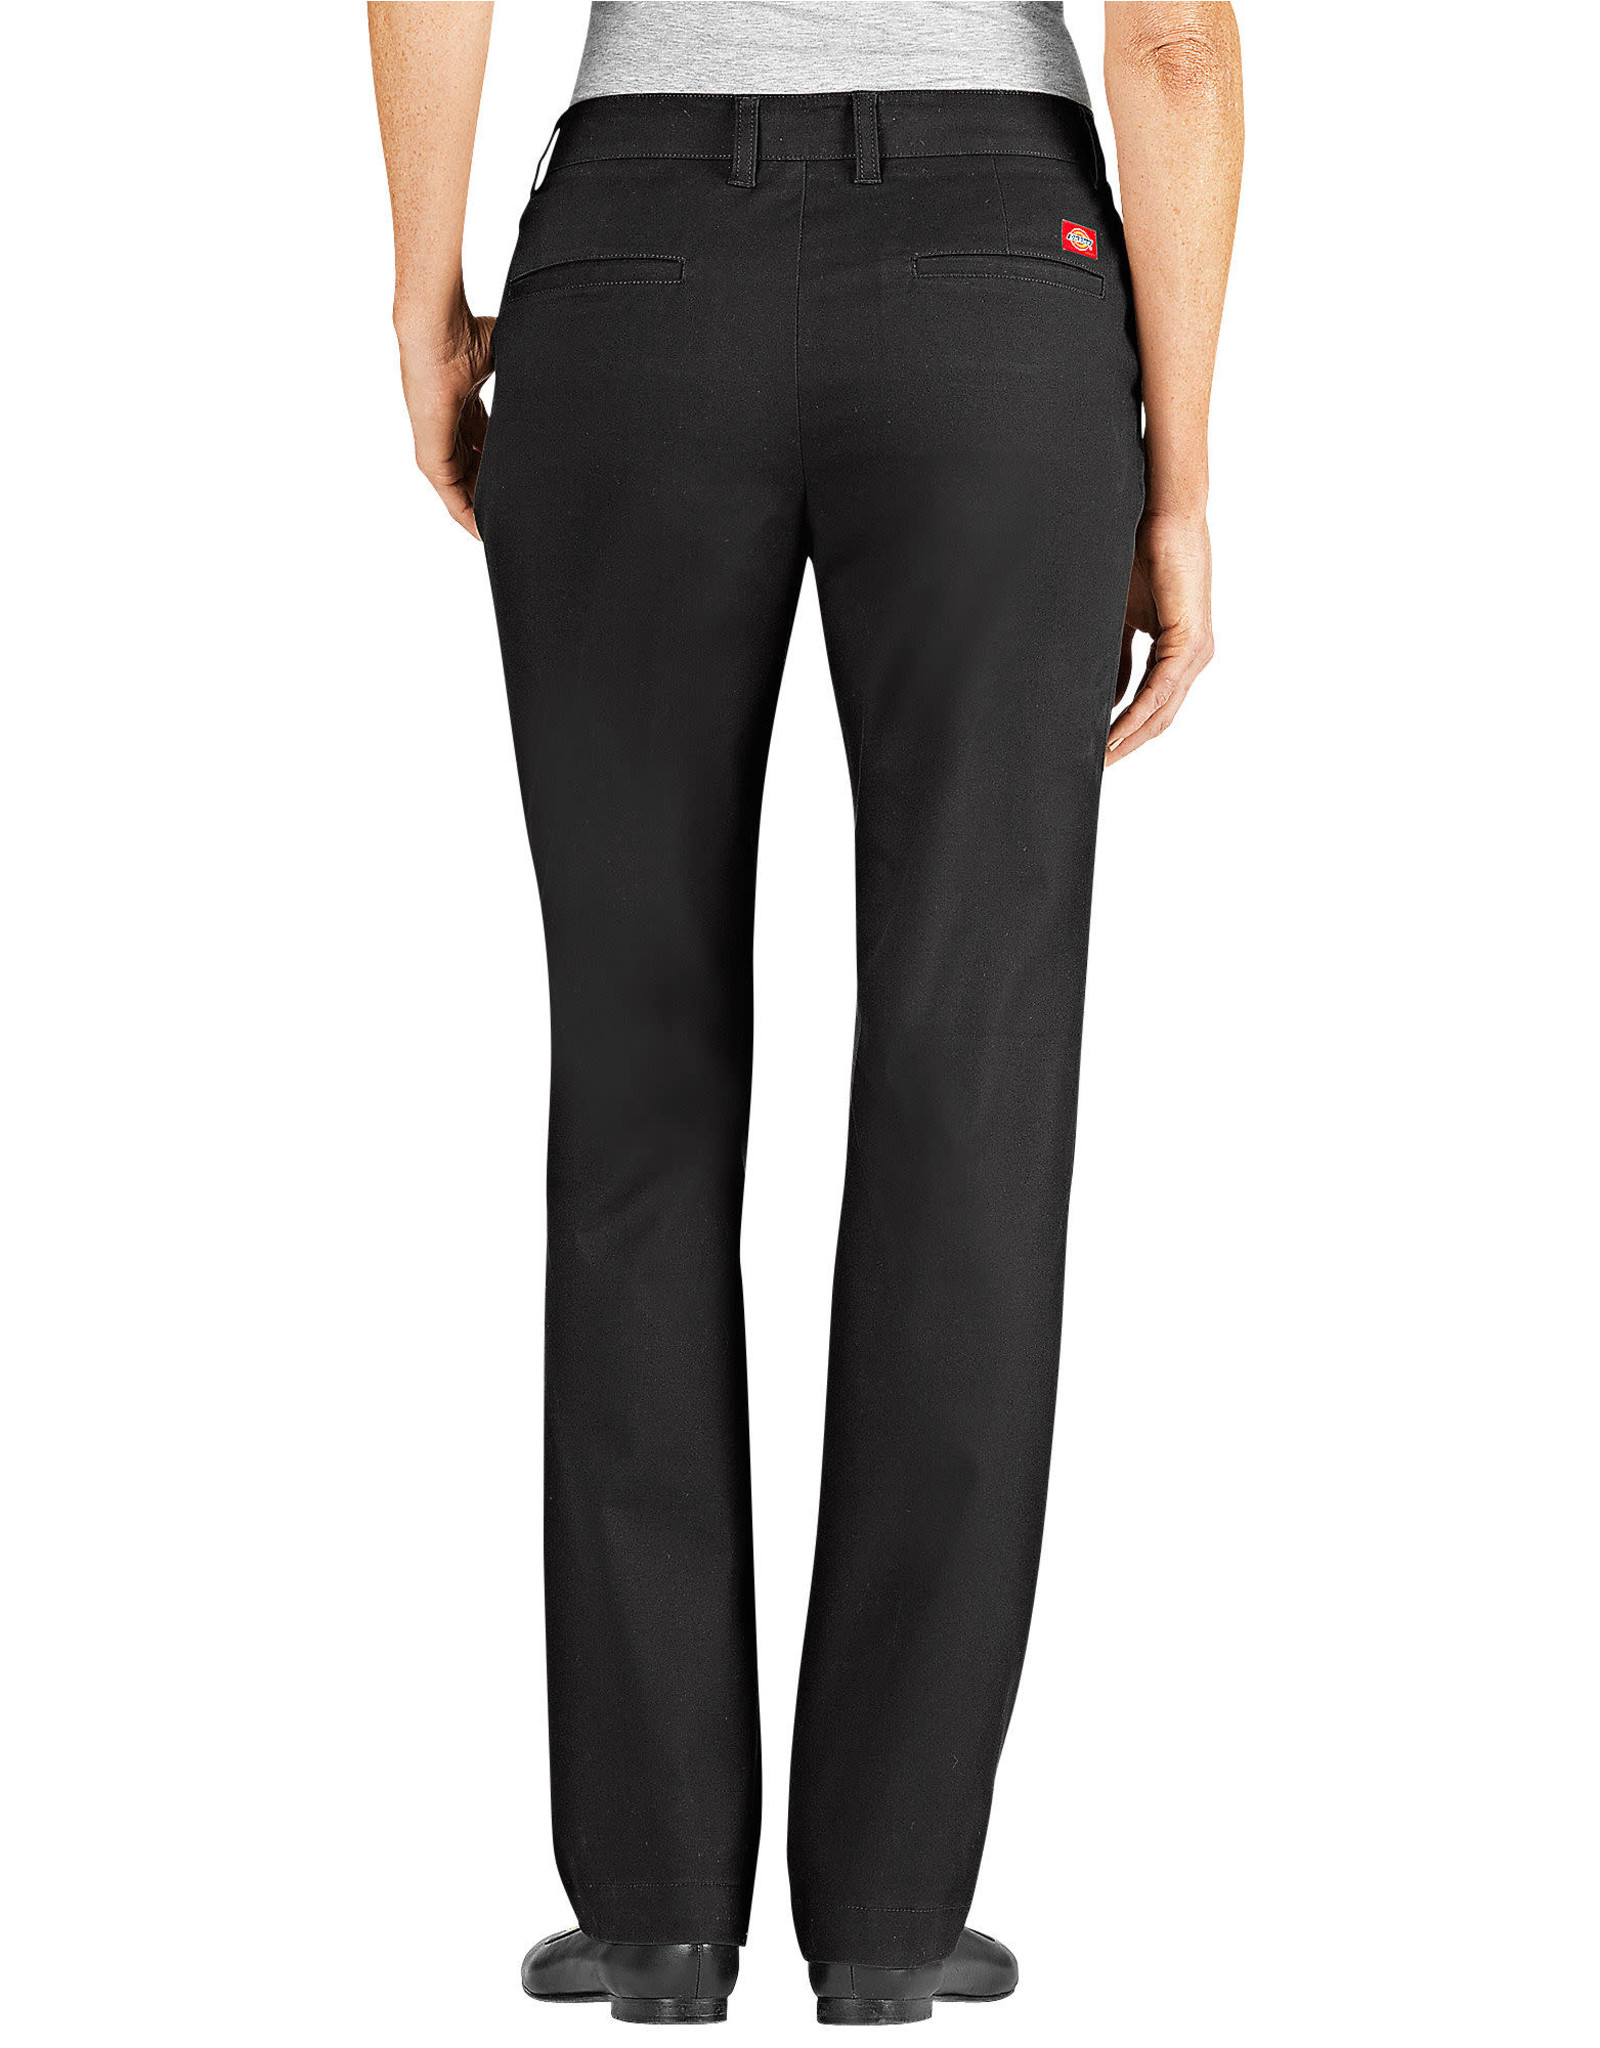 DICKIES Women`s Stretch Twill Pant FP212BK